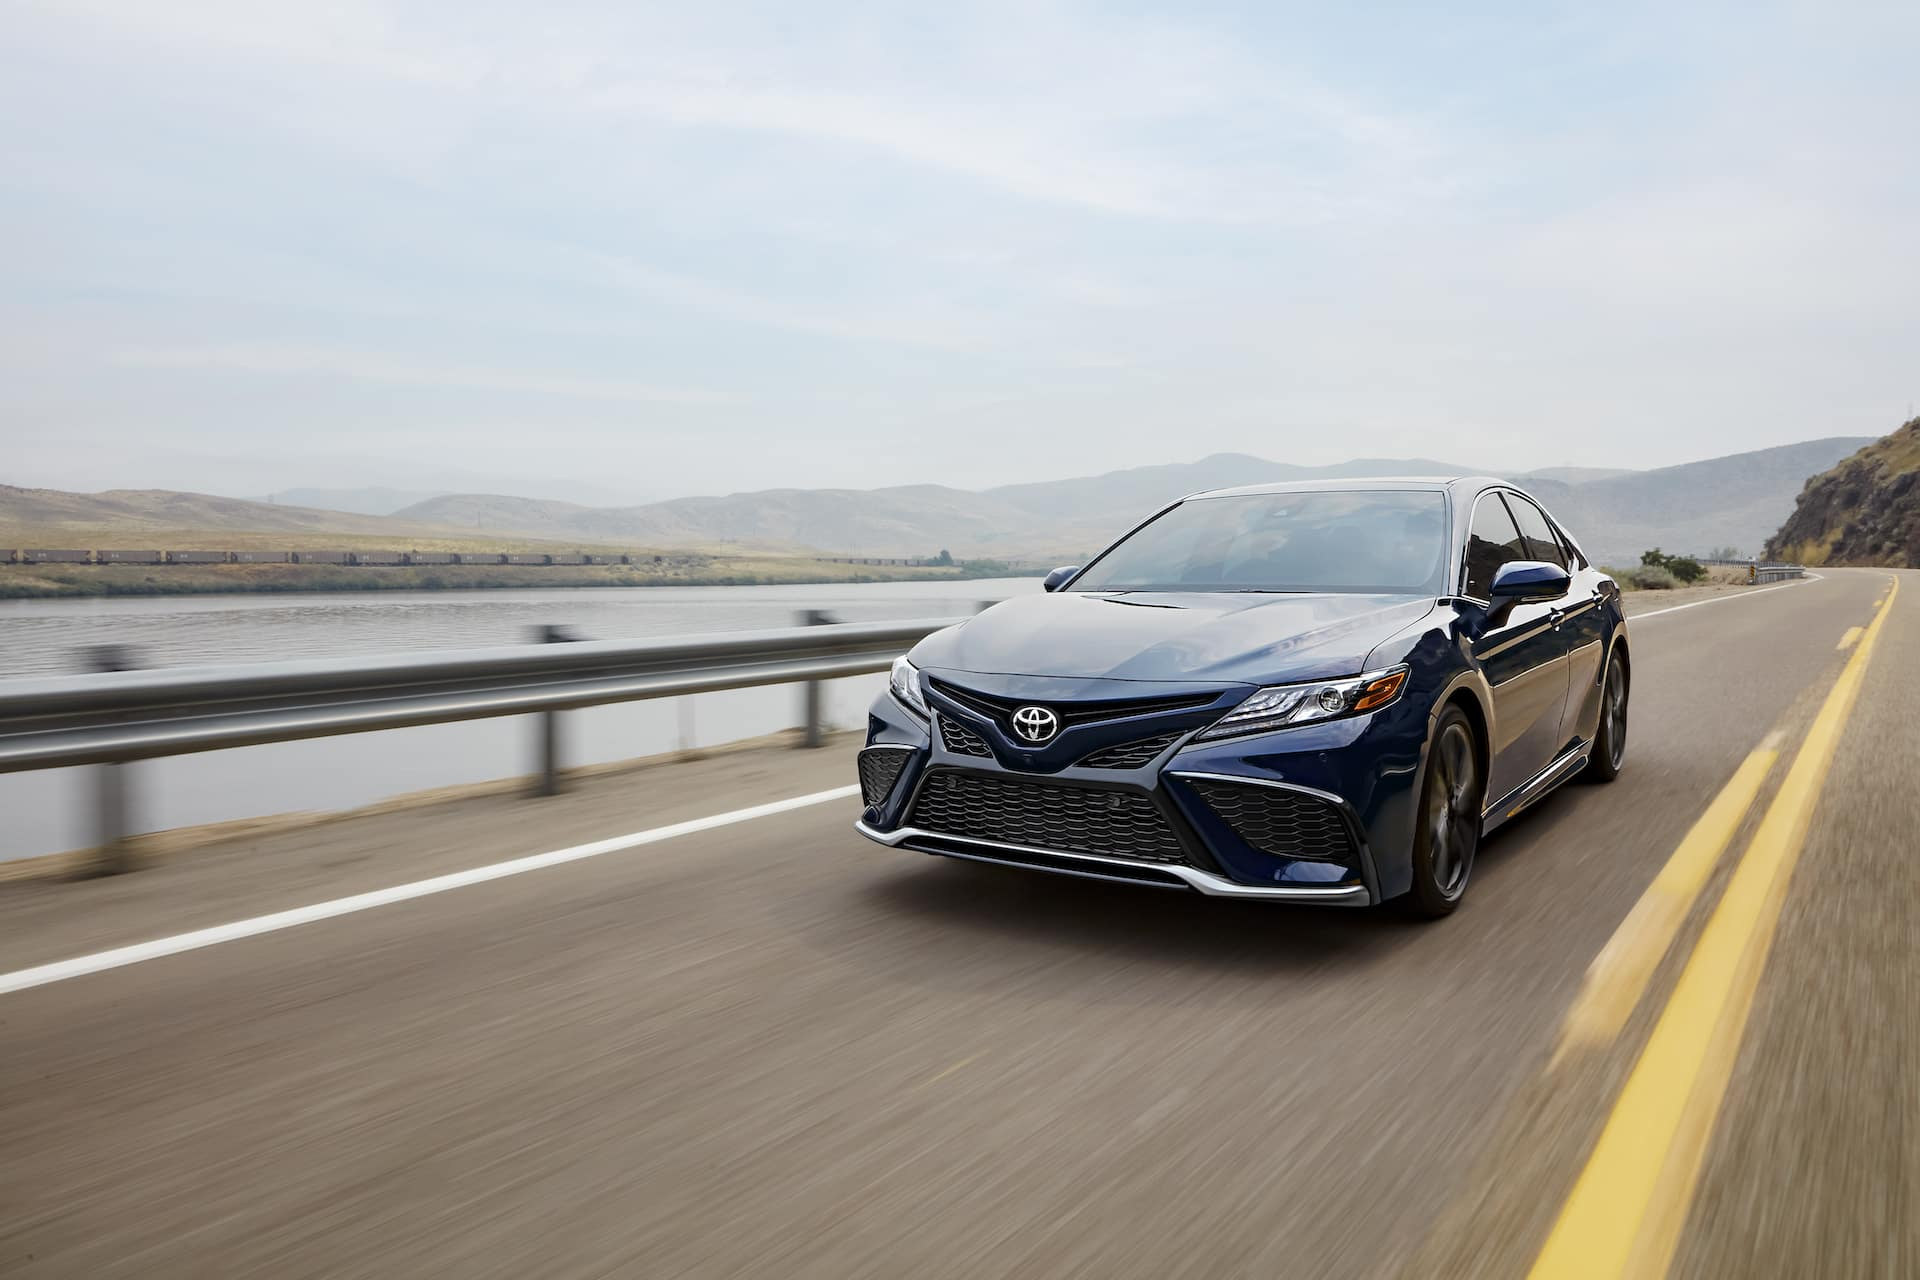 2021 Toyota Camry versus 2021 Honda Accord Comparison at Lancaster Toyota in East Petersburg | 2021 Toyota Camry driving by river